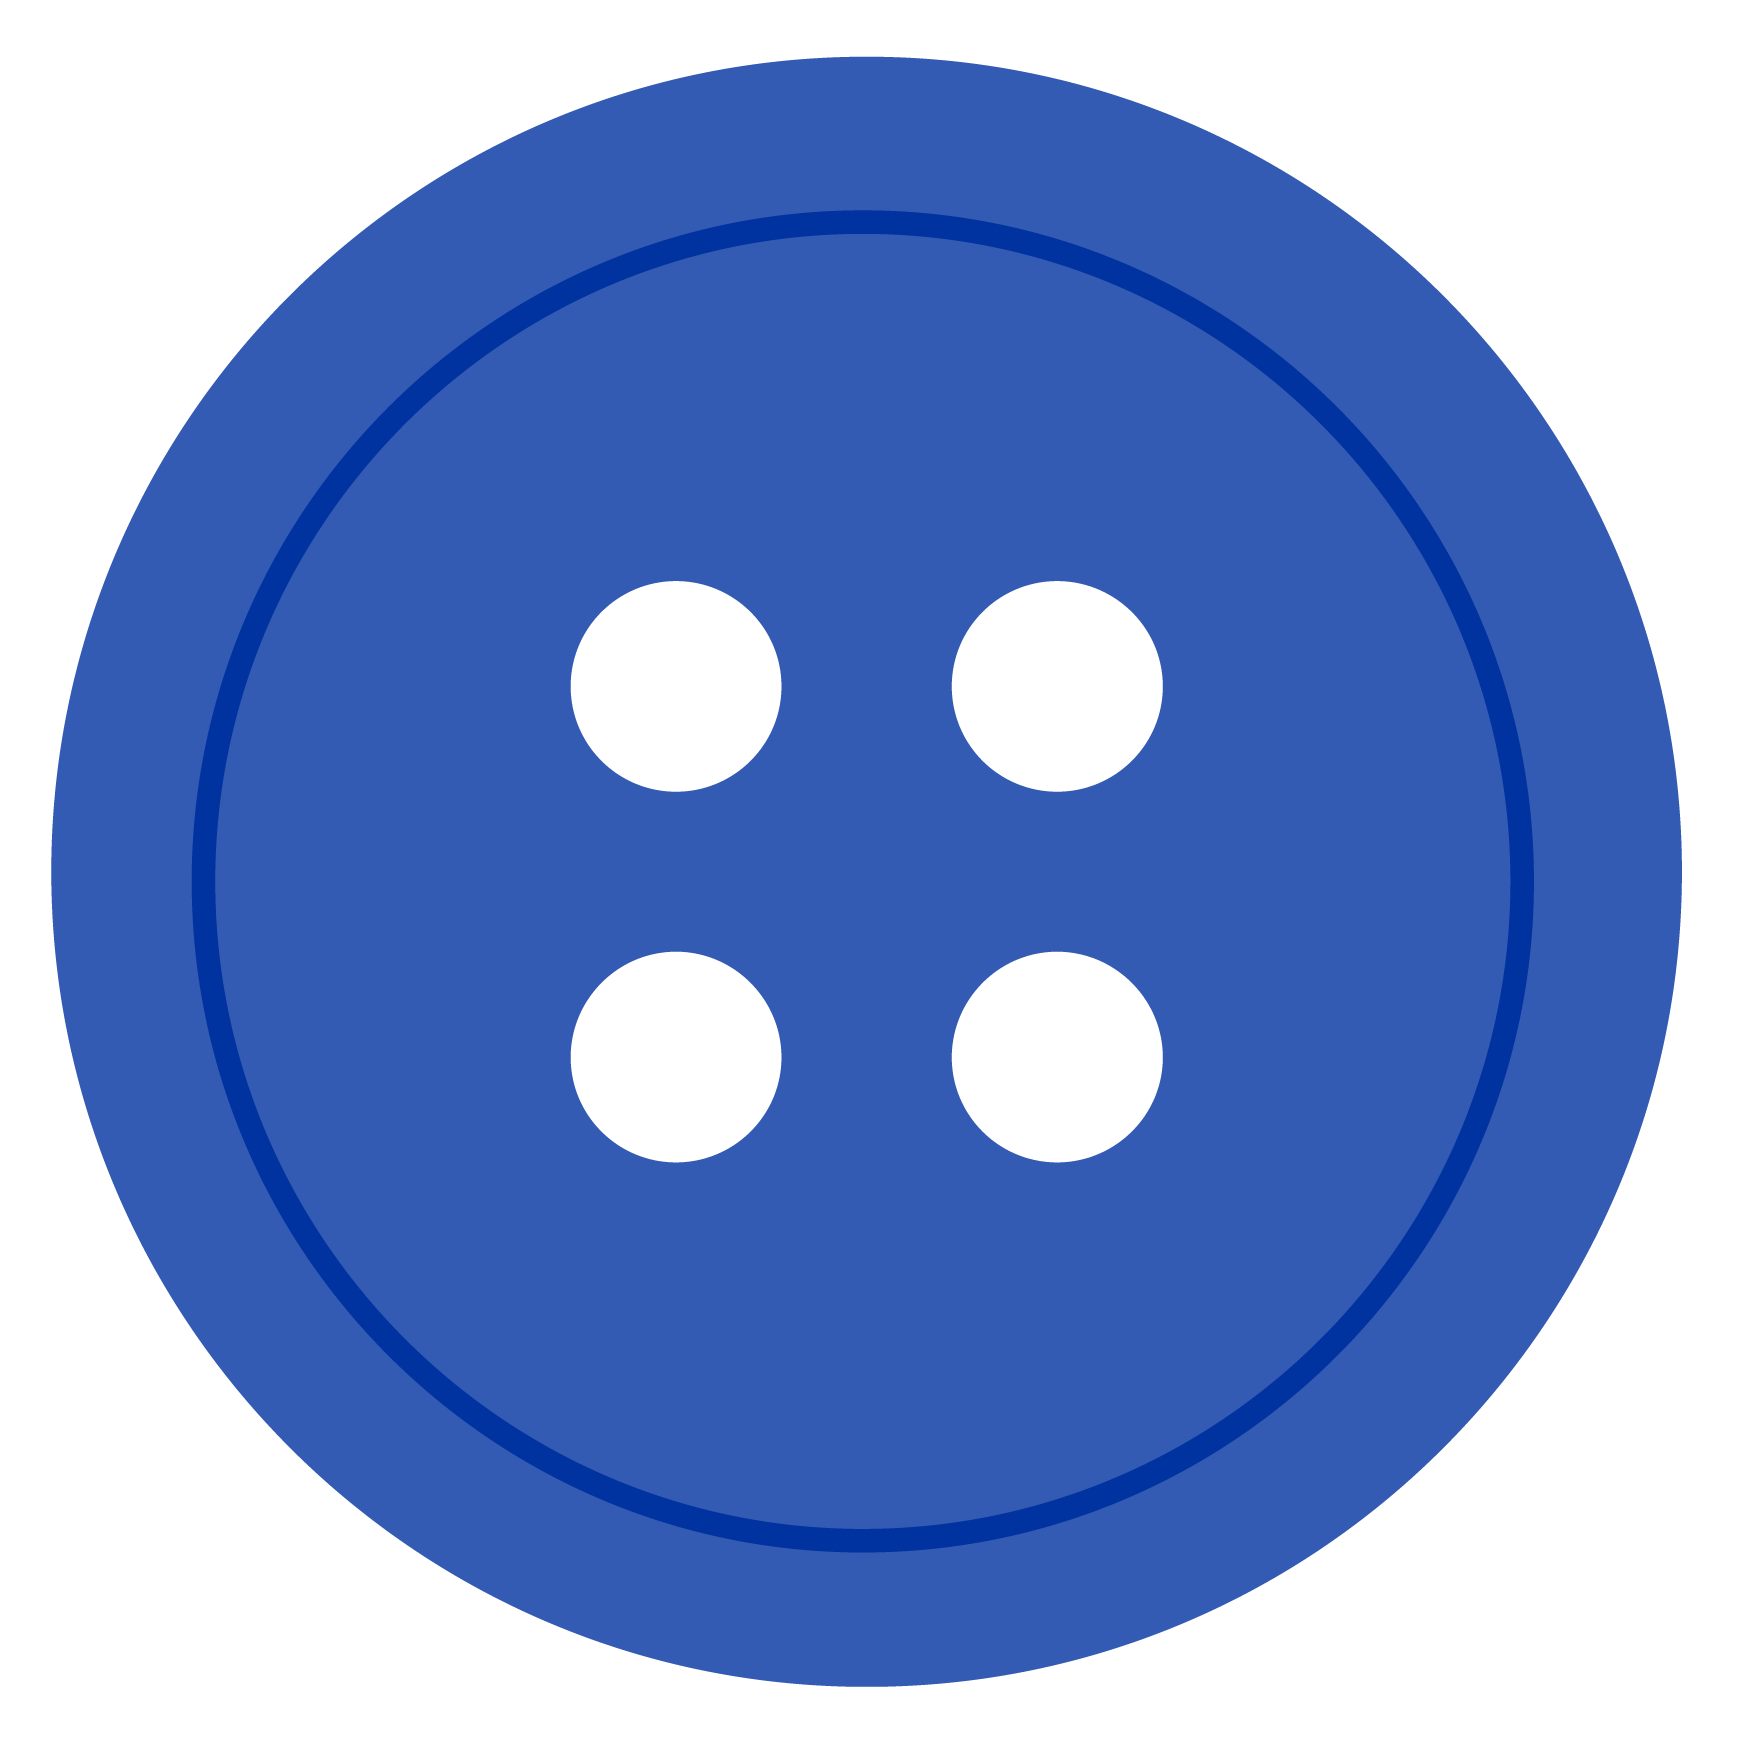 Cartoon drawing of a blue button.